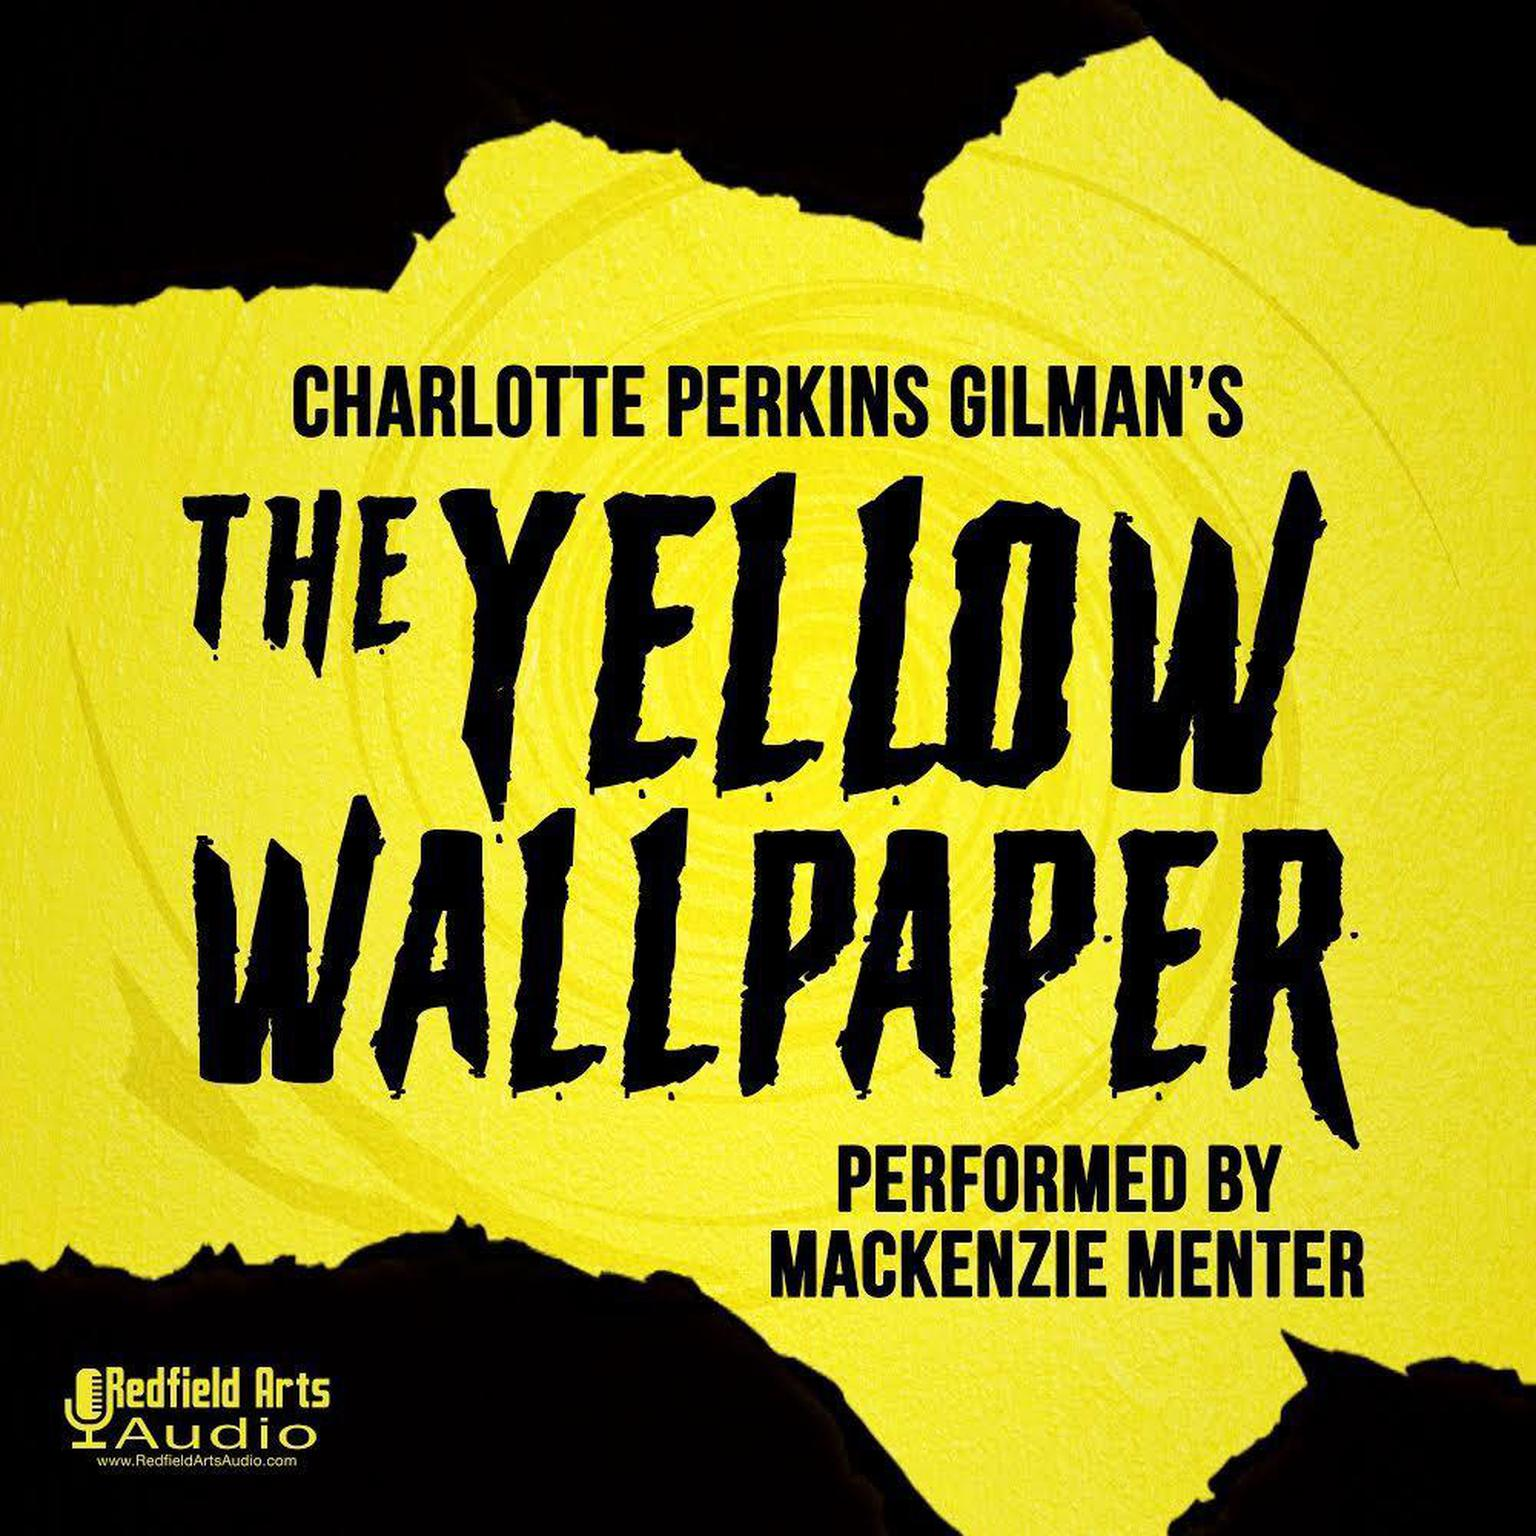 Printable Charlotte Perkins Gilman's The Yellow Wallpaper Audiobook Cover Art